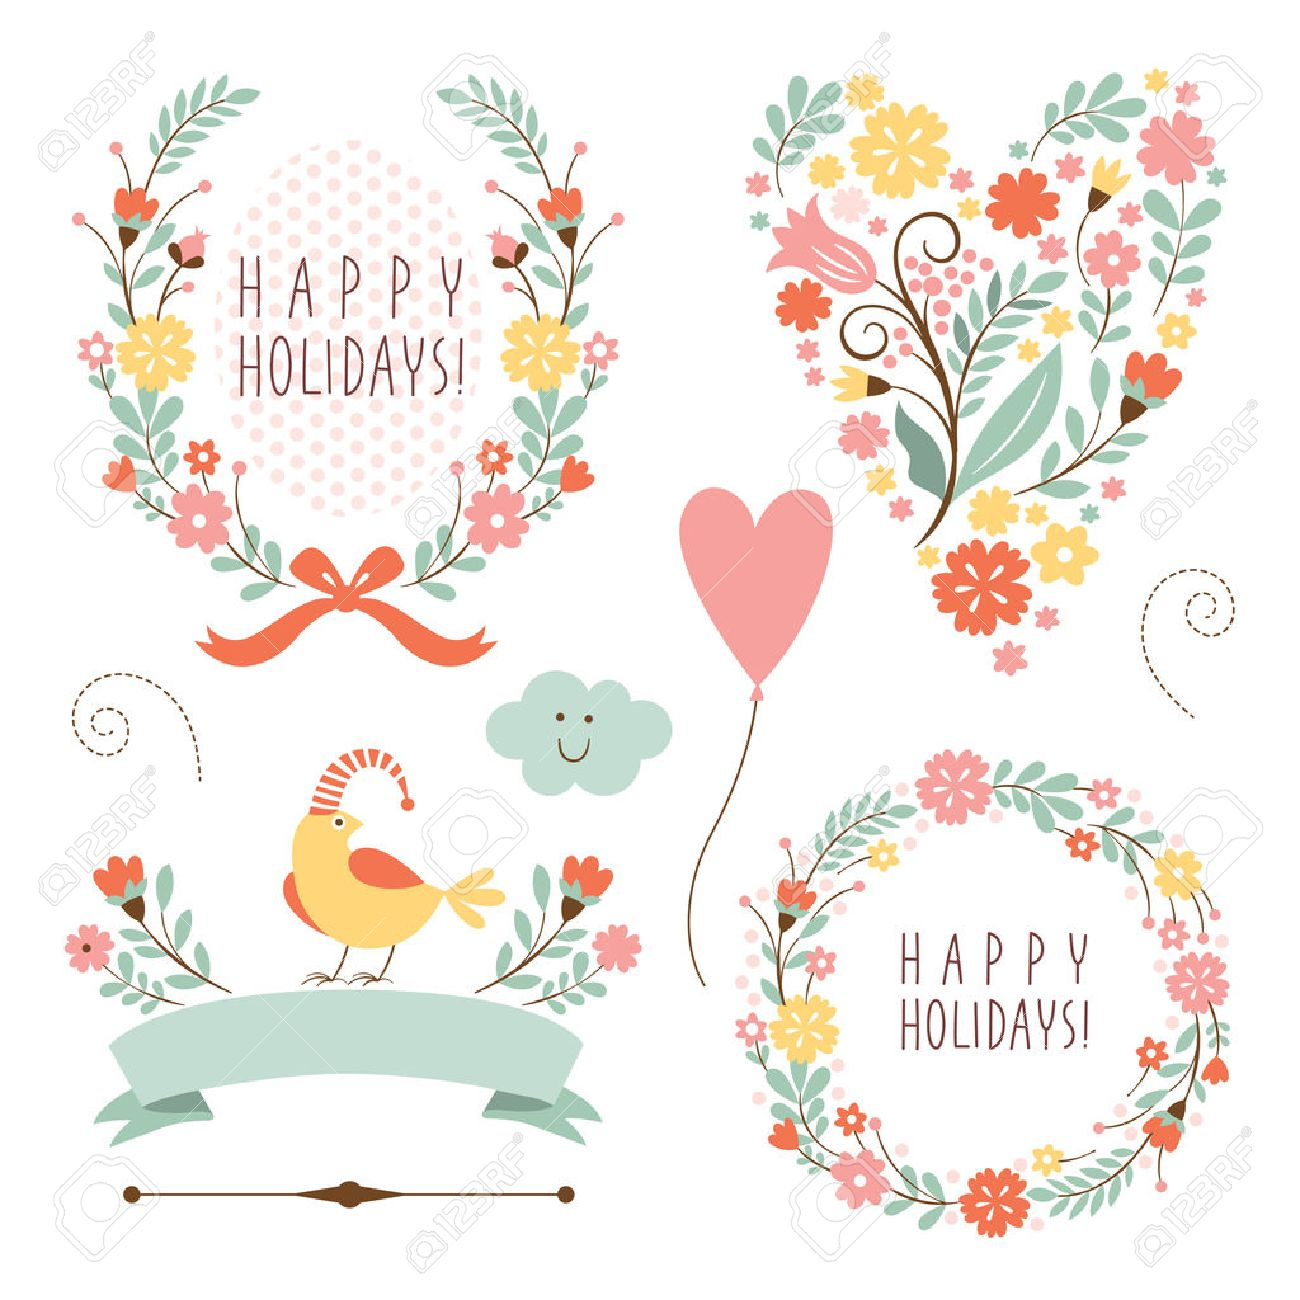 Banners, Floral Frames And Graphic Elements Royalty Free Cliparts ...